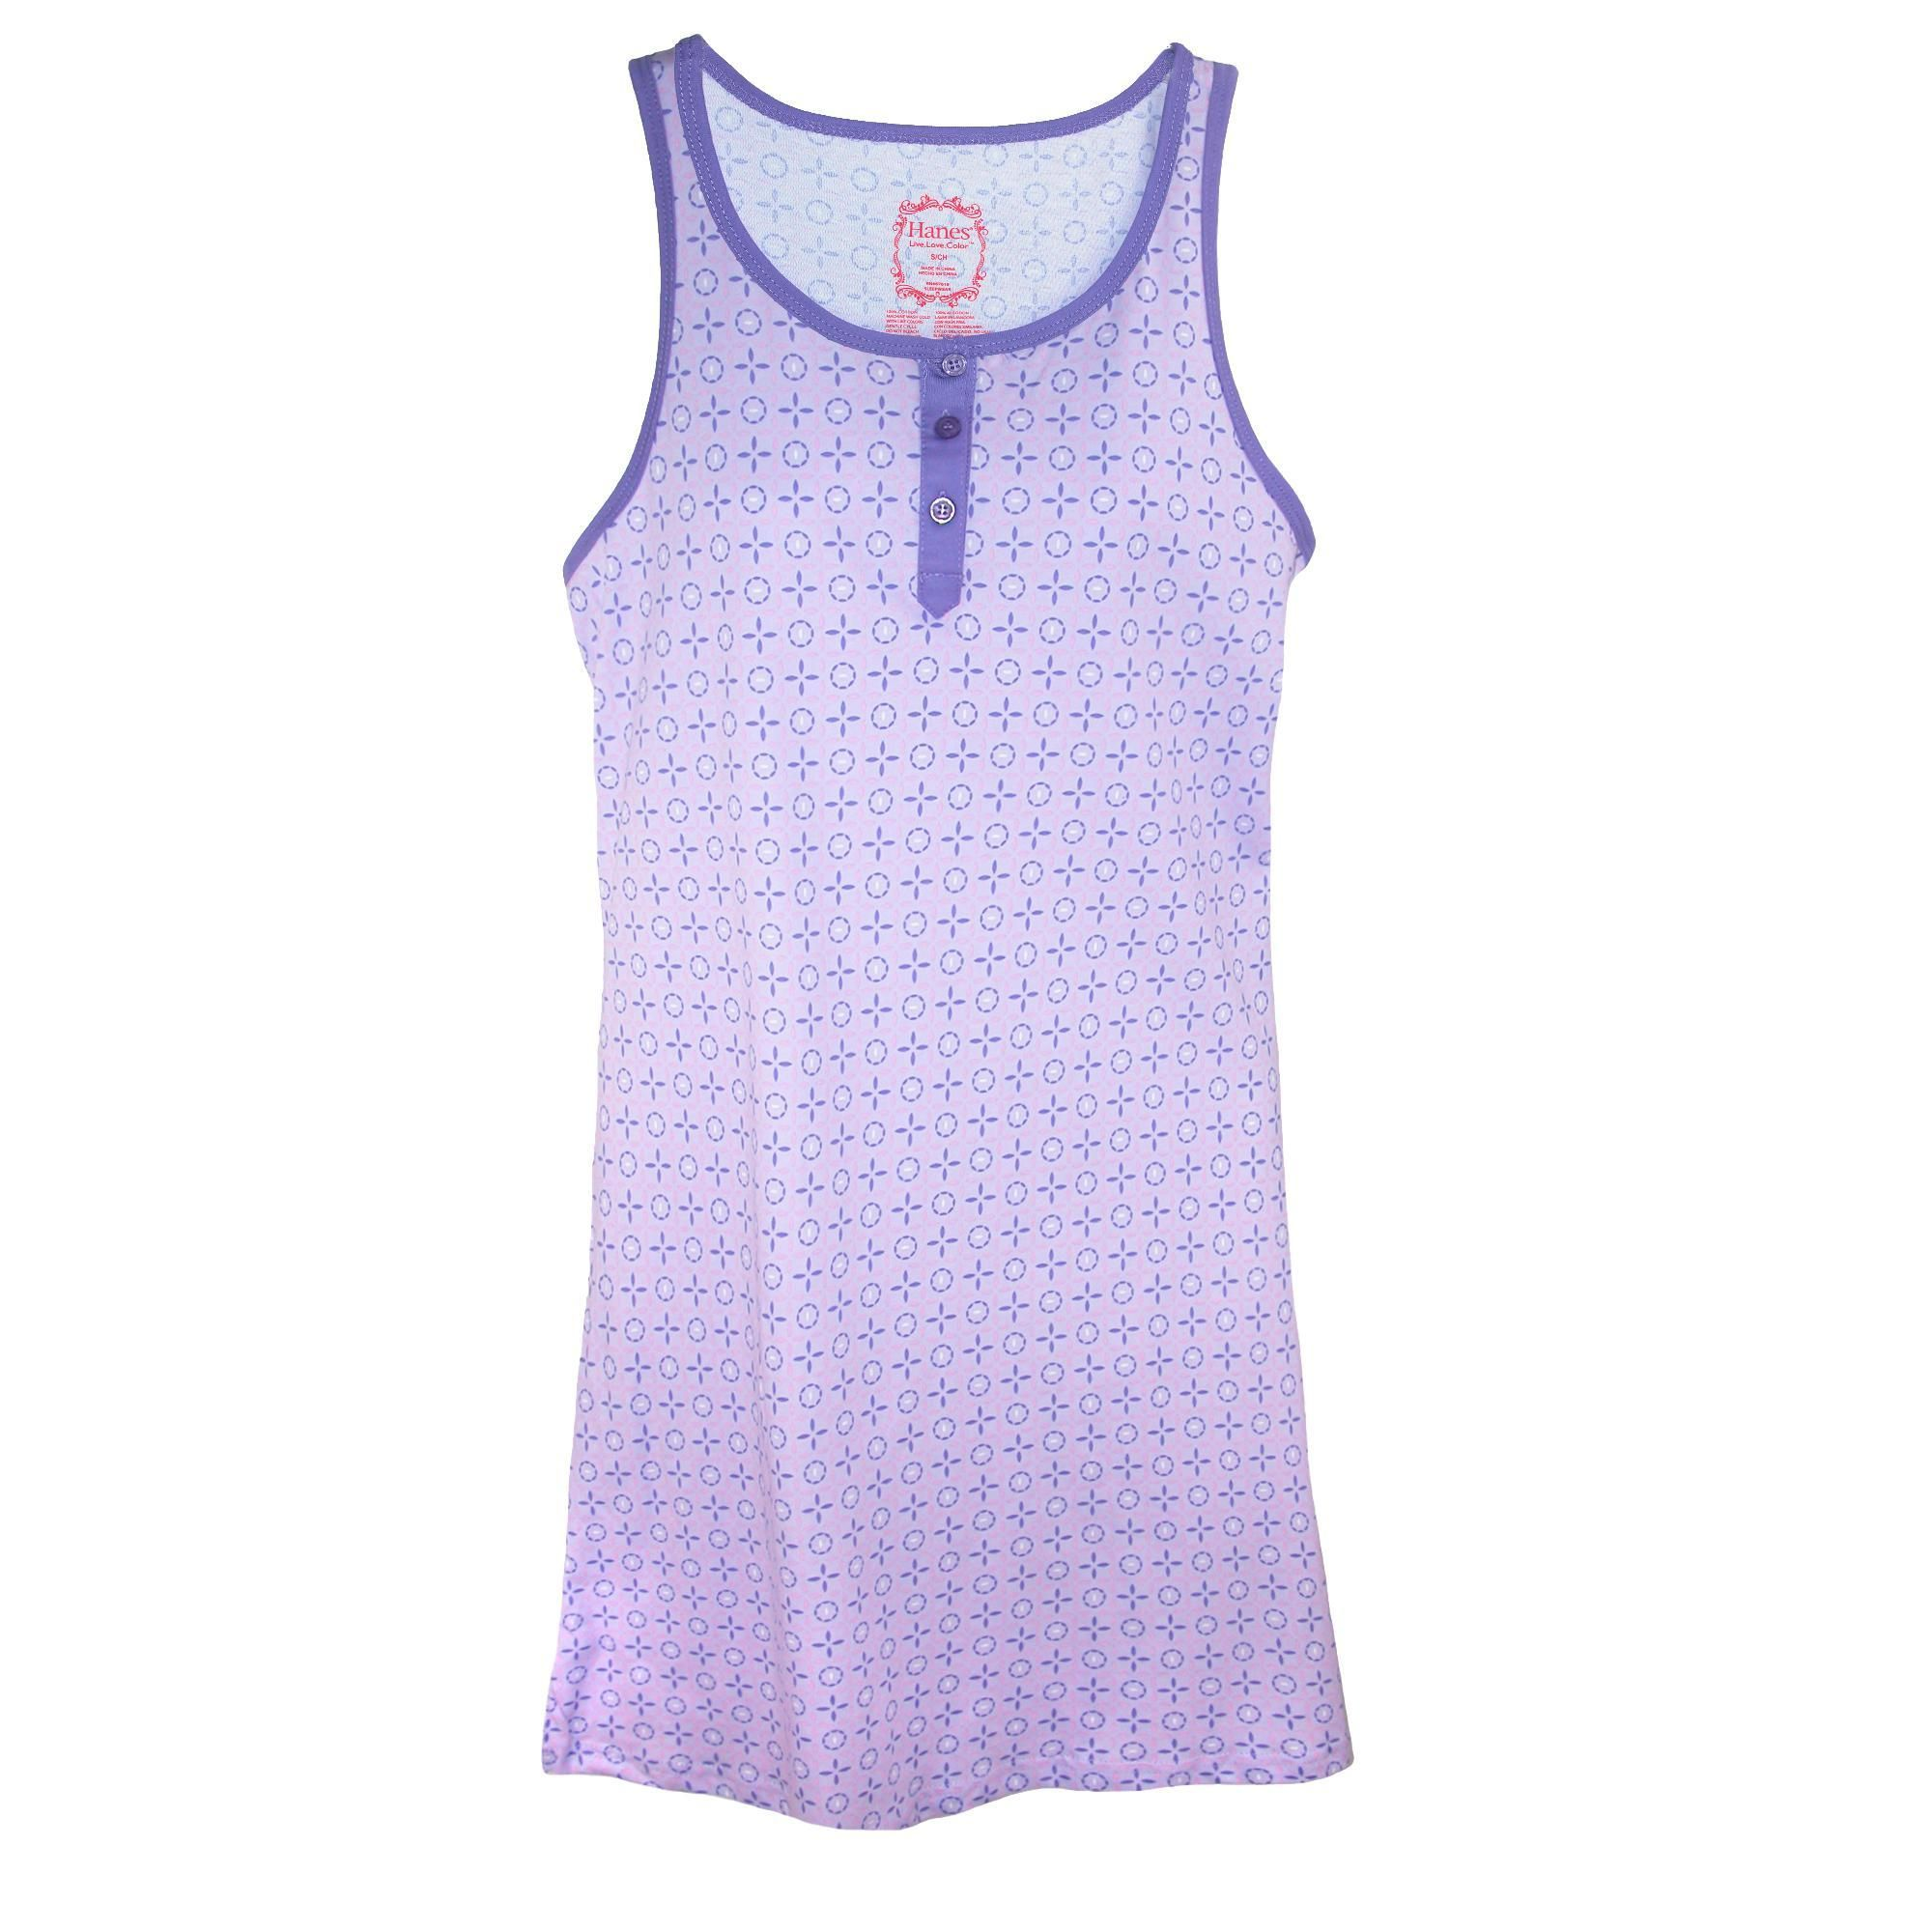 Hanes womenus sleeveless night gown tank in products